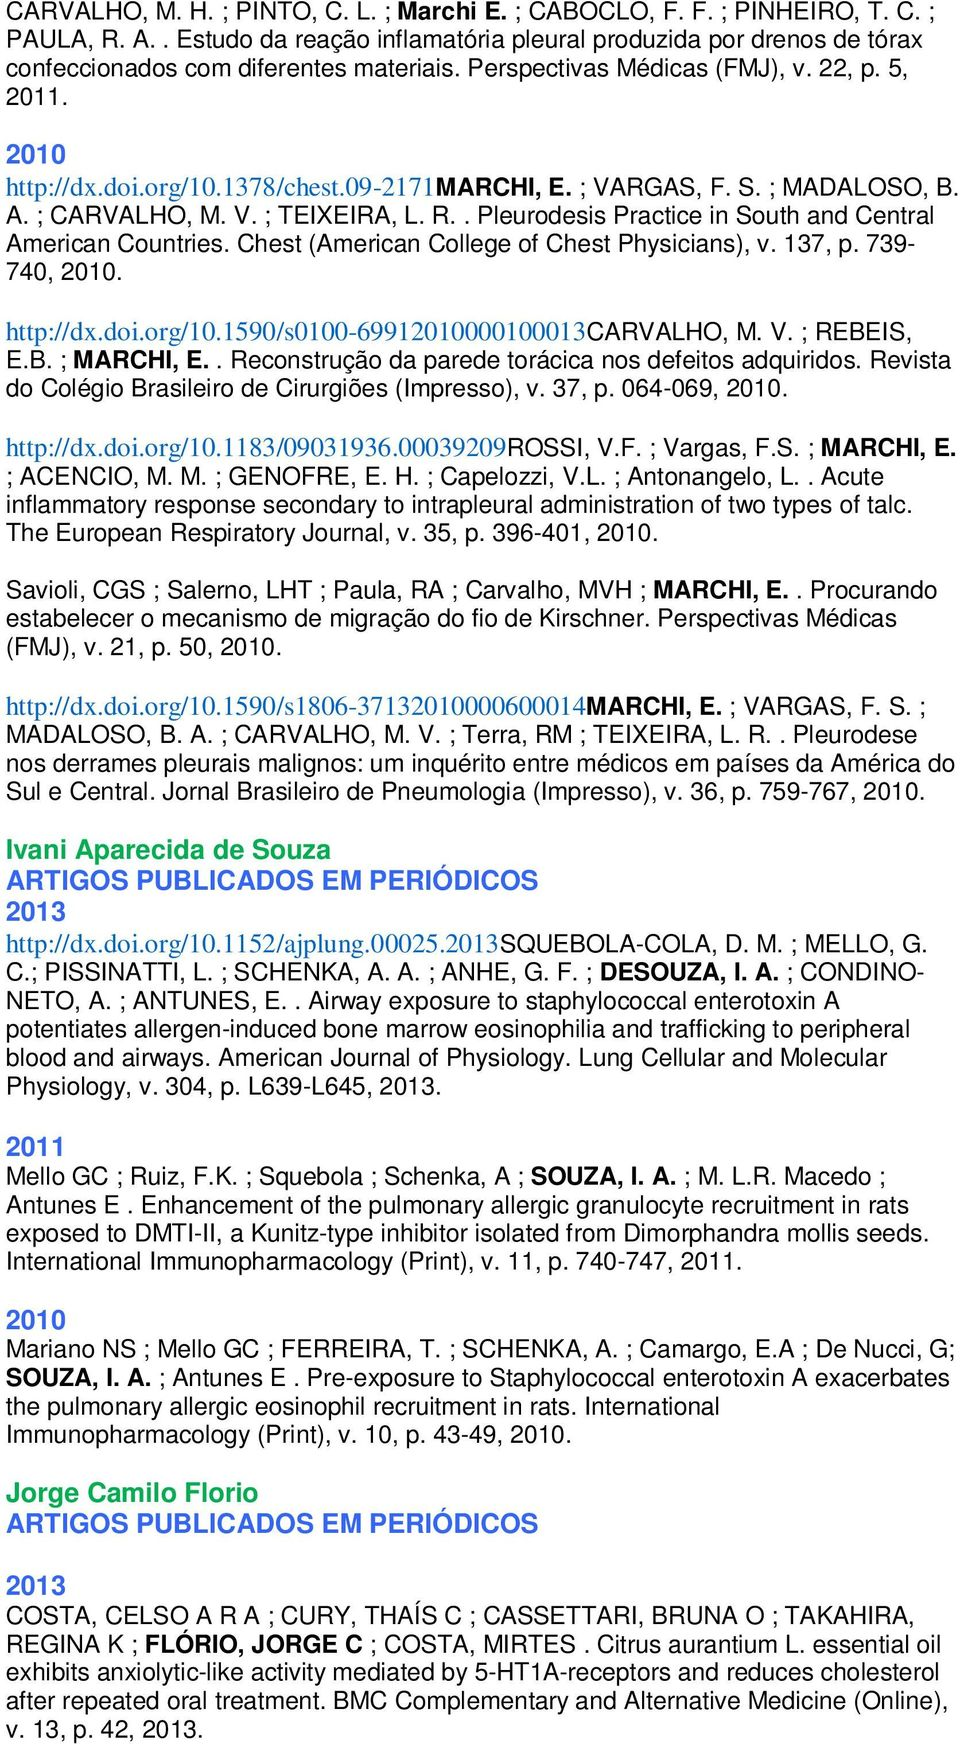 09-2171marchi, E. ; VARGAS, F. S. ; MADALOSO, B. A. ; CARVALHO, M. V. ; TEIXEIRA, L. R.. Pleurodesis Practice in South and Central American Countries. Chest (American College of Chest Physicians), v.